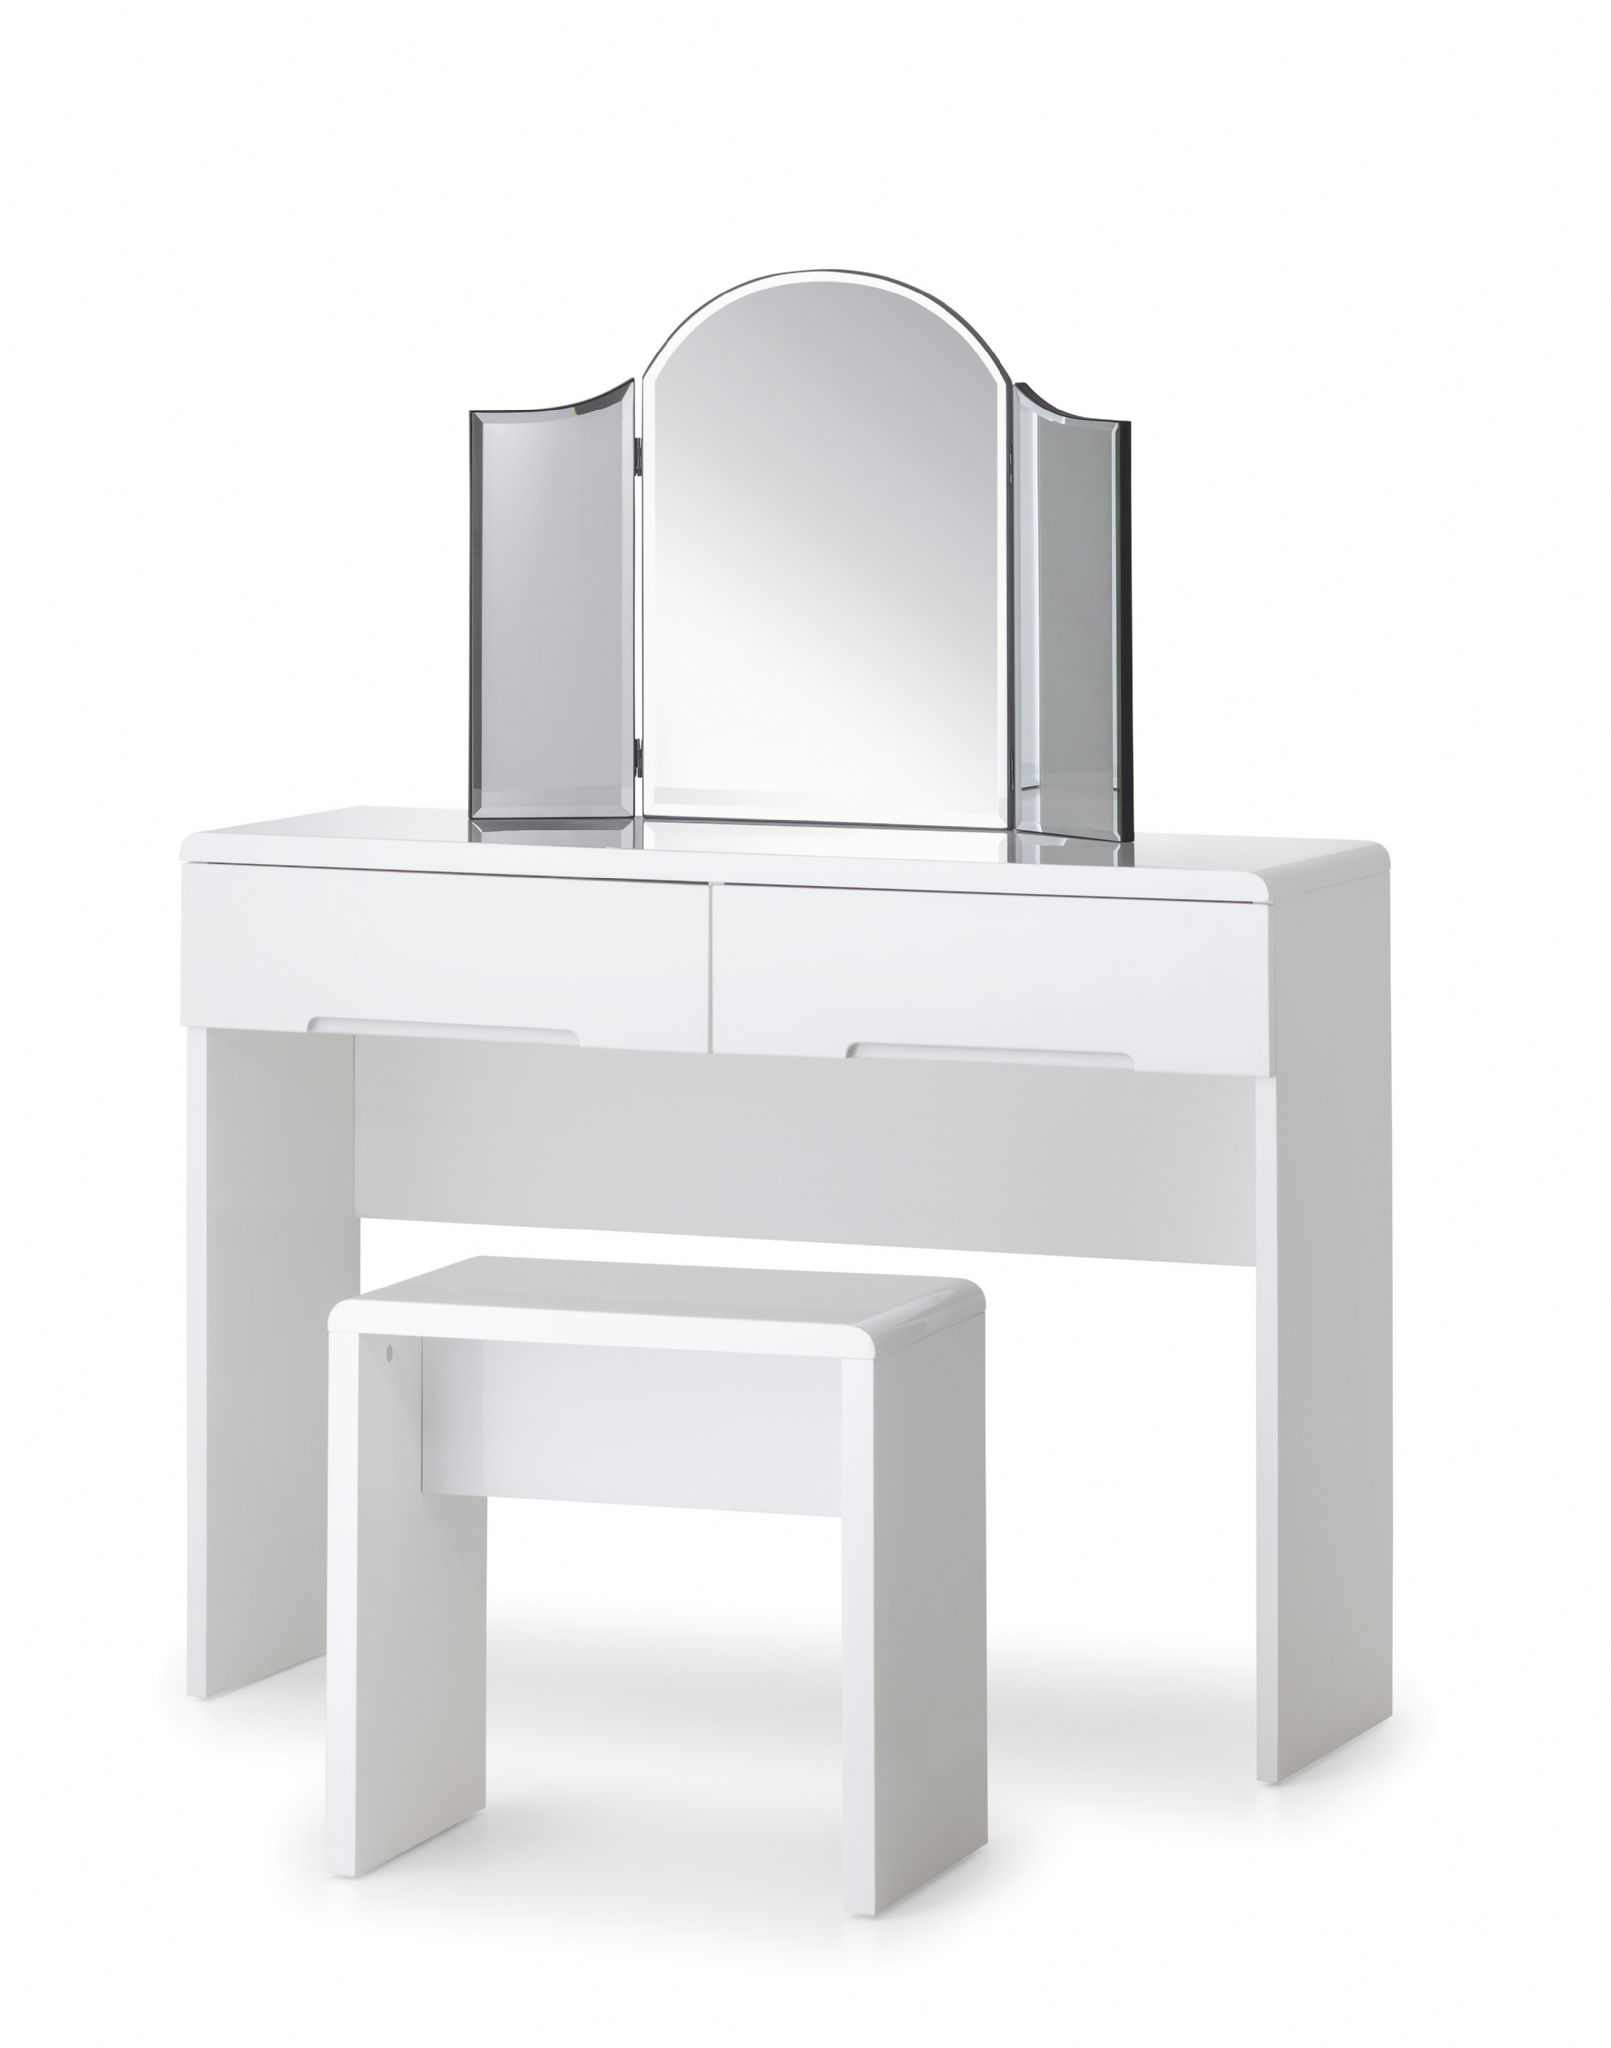 White Gloss Drawers Alzira White High Gloss Dressing Table With 2 Drawers Jb316